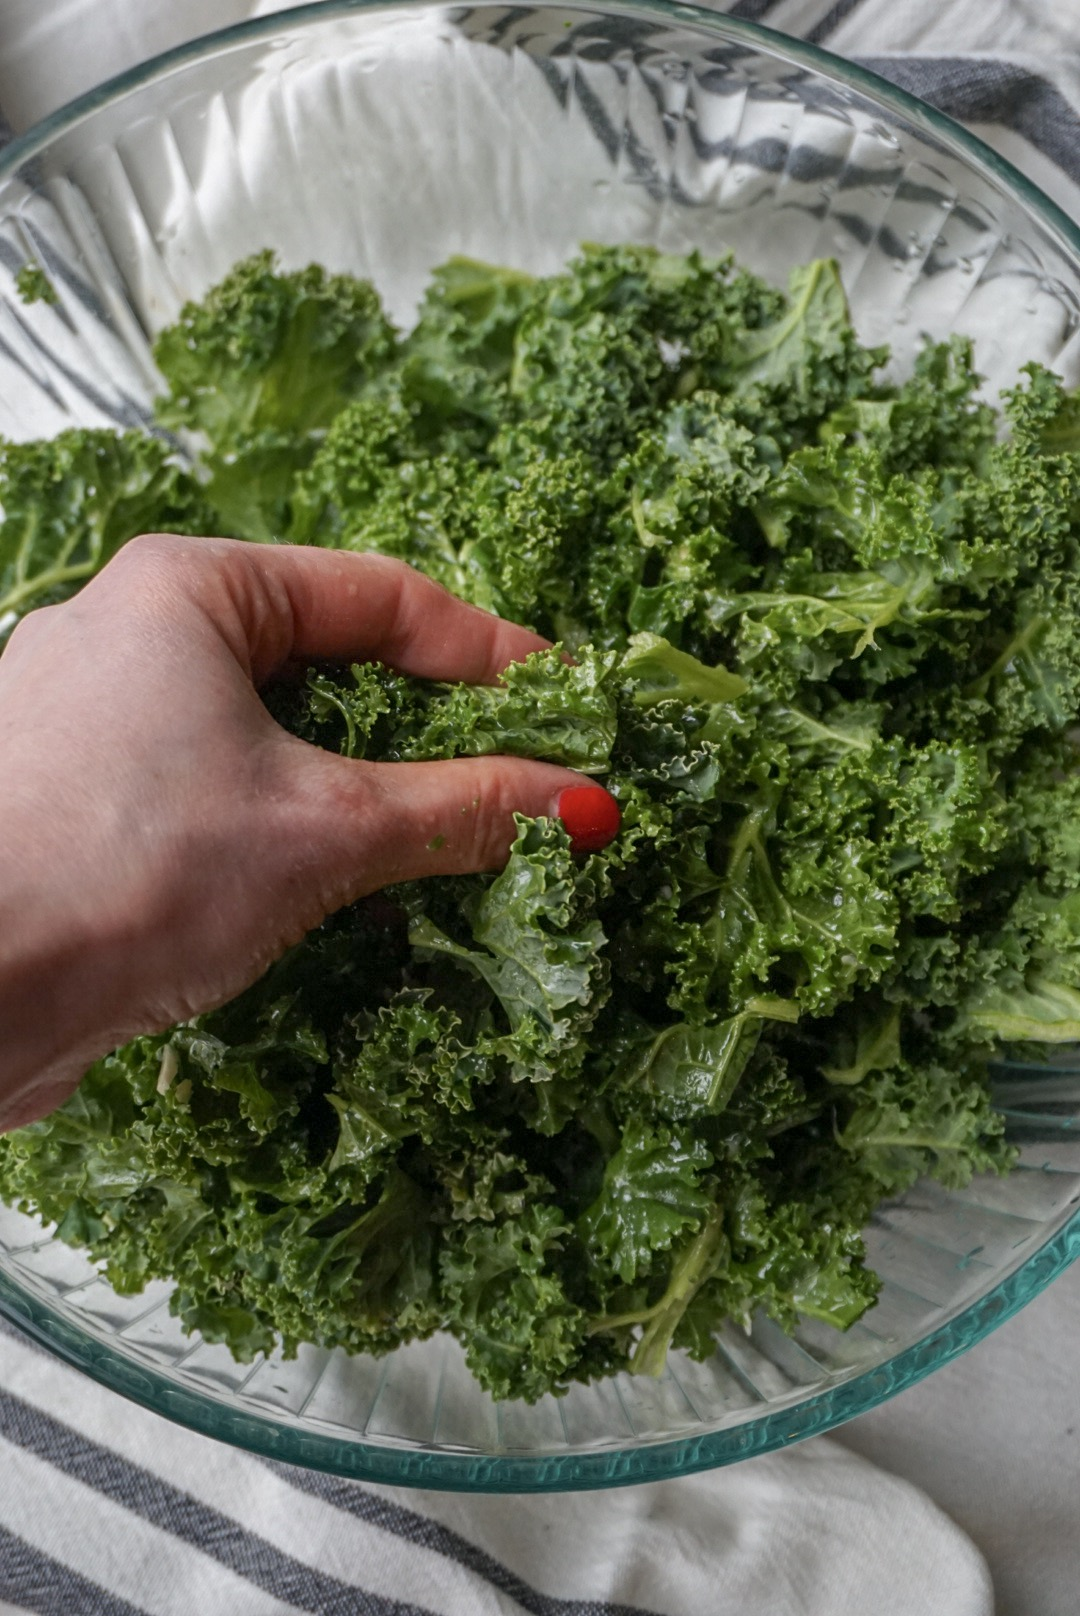 How to get the bitterness out of kale